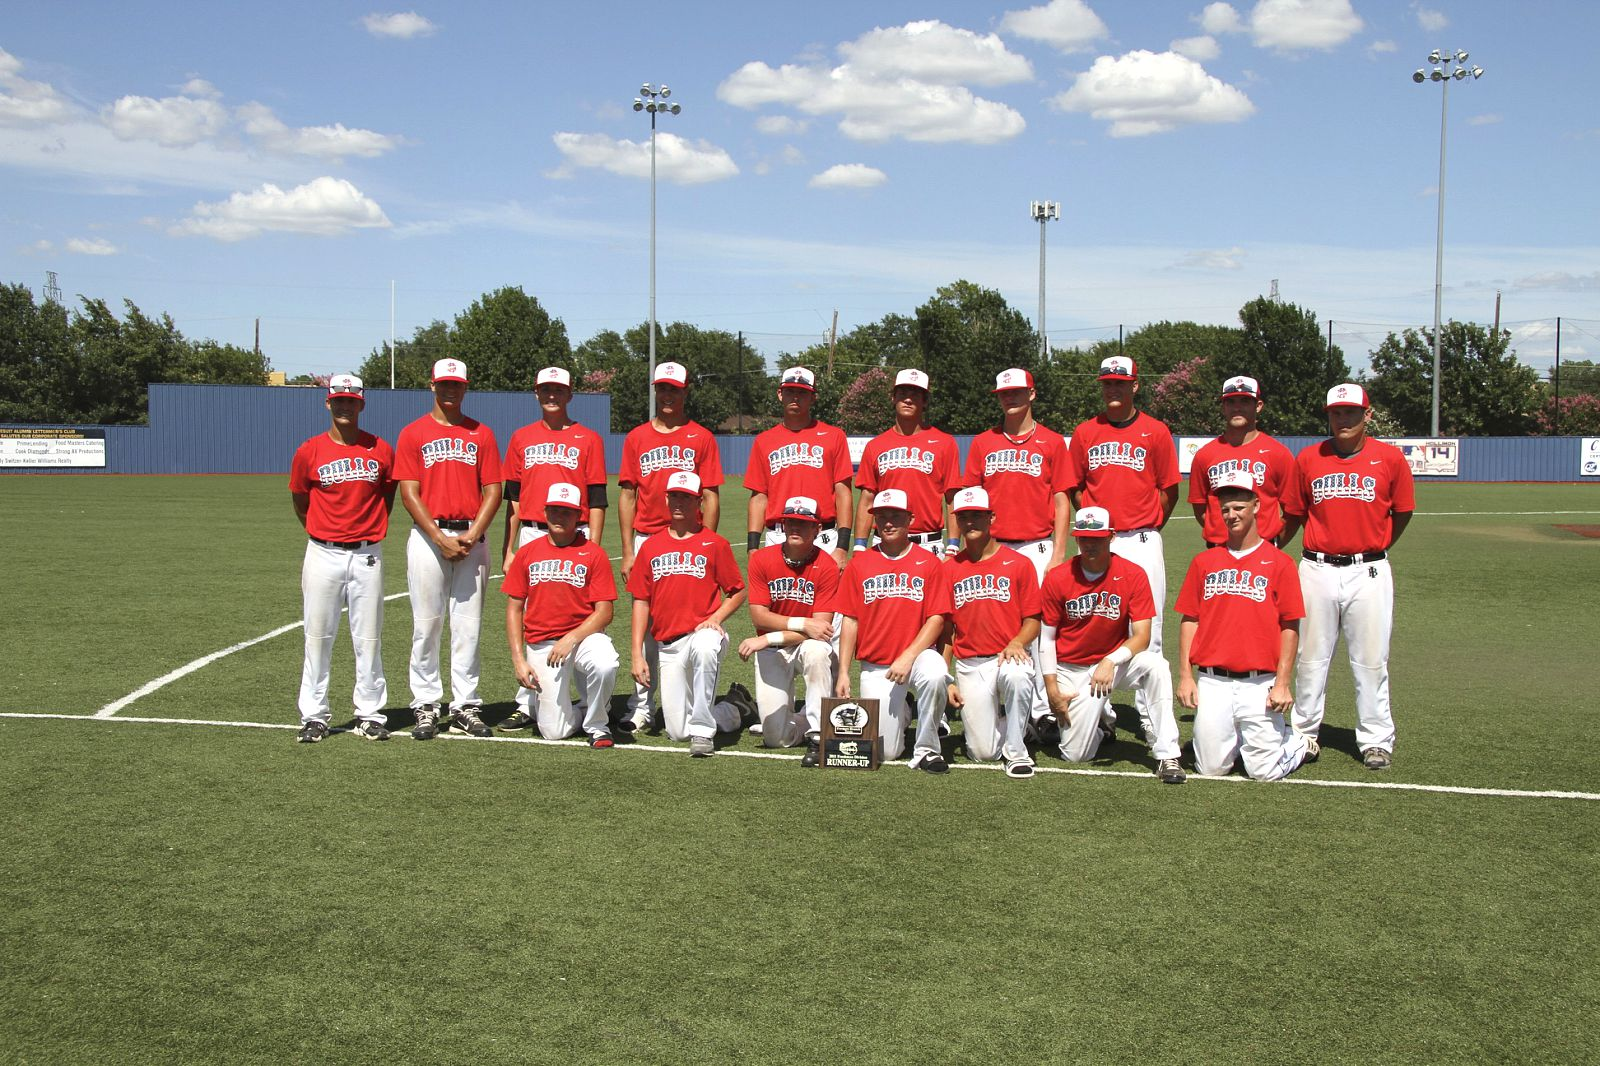 14U 2012 BASEBALL TOURNAMENTS INDIANA